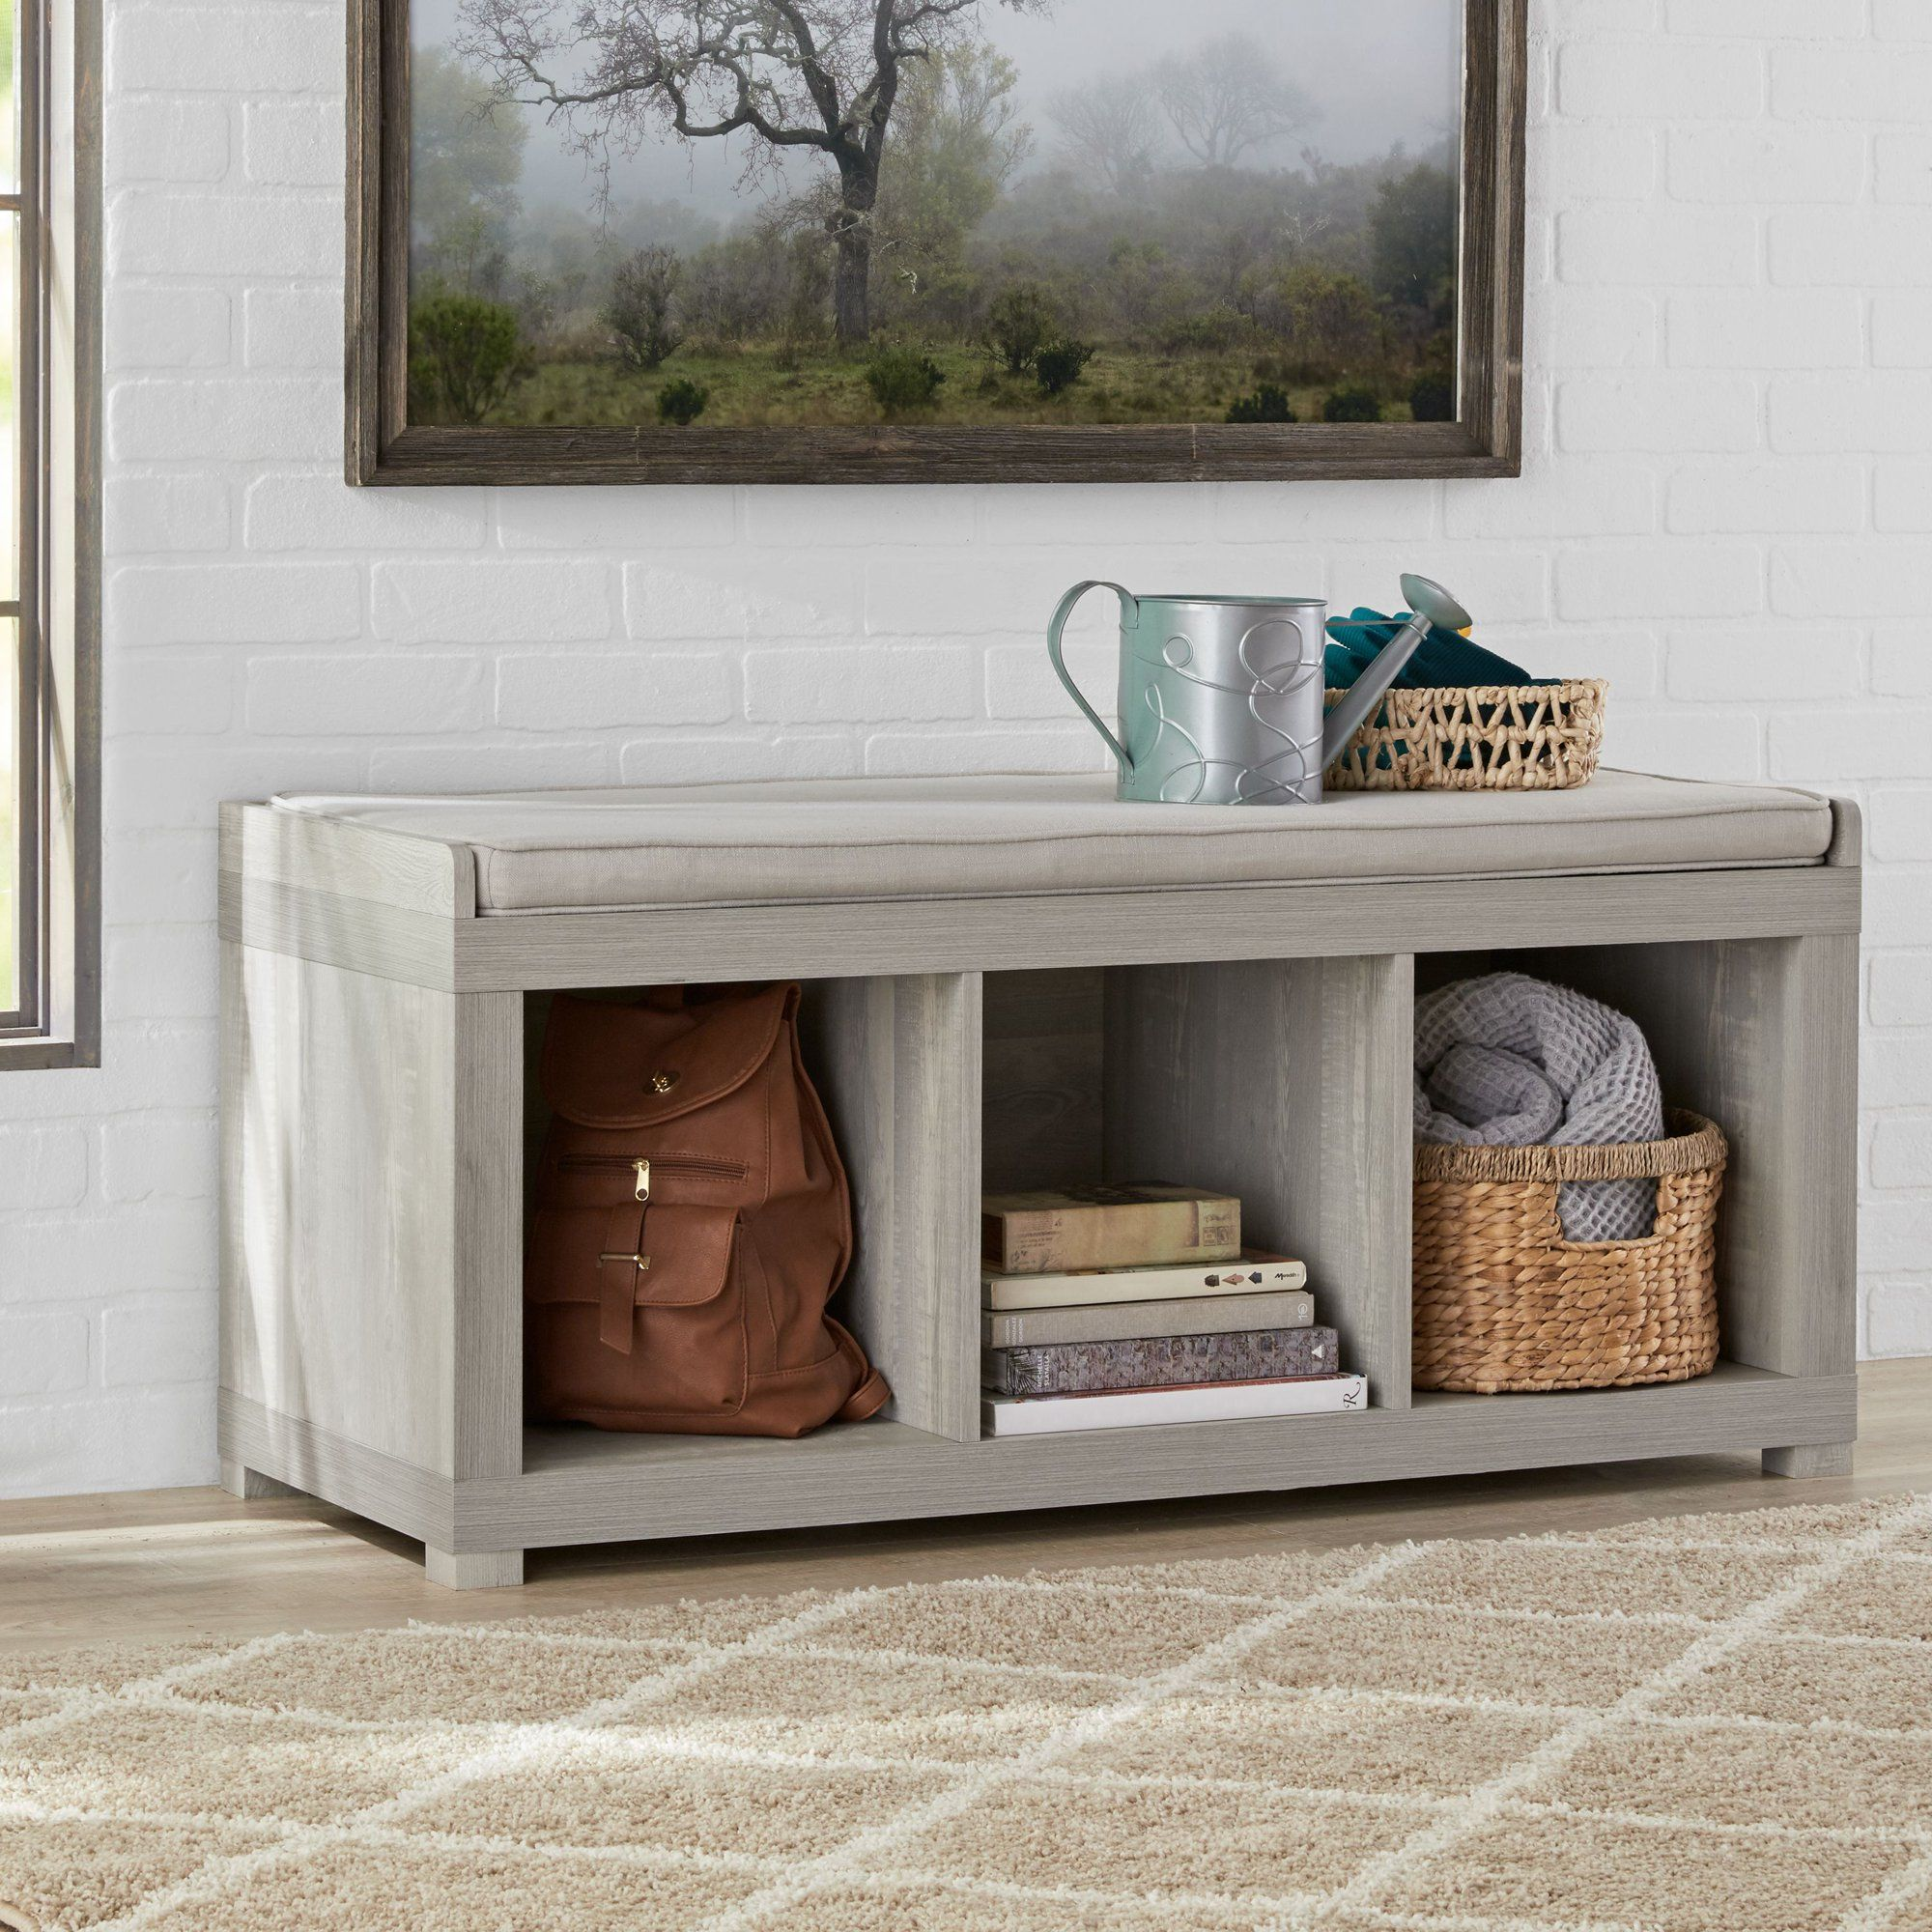 8ad2ce8e7f9bbc71eed76f296ce8c368 - Better Homes And Gardens 3 Cube Organizer Bench With Cushion